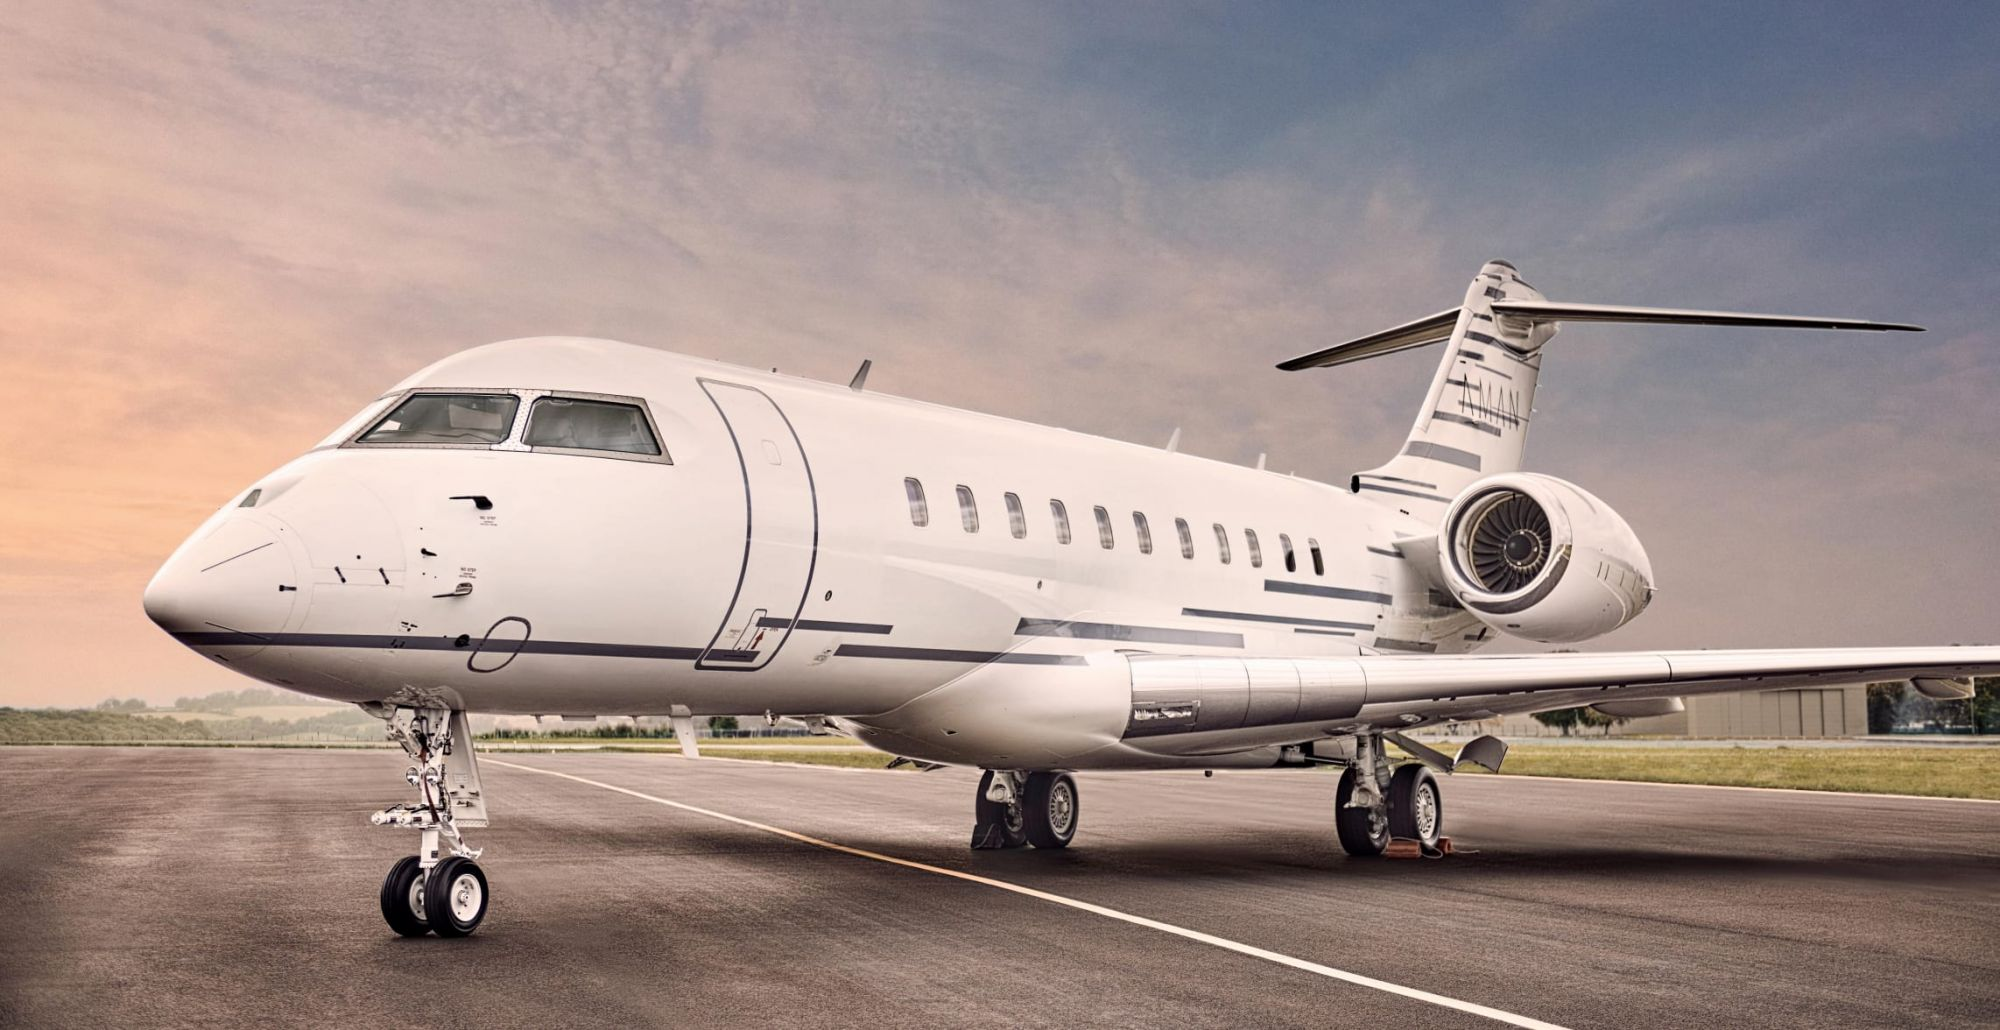 Aman Takes To The Skies With The Launch Of Its New Private Jet For Guests To Charter